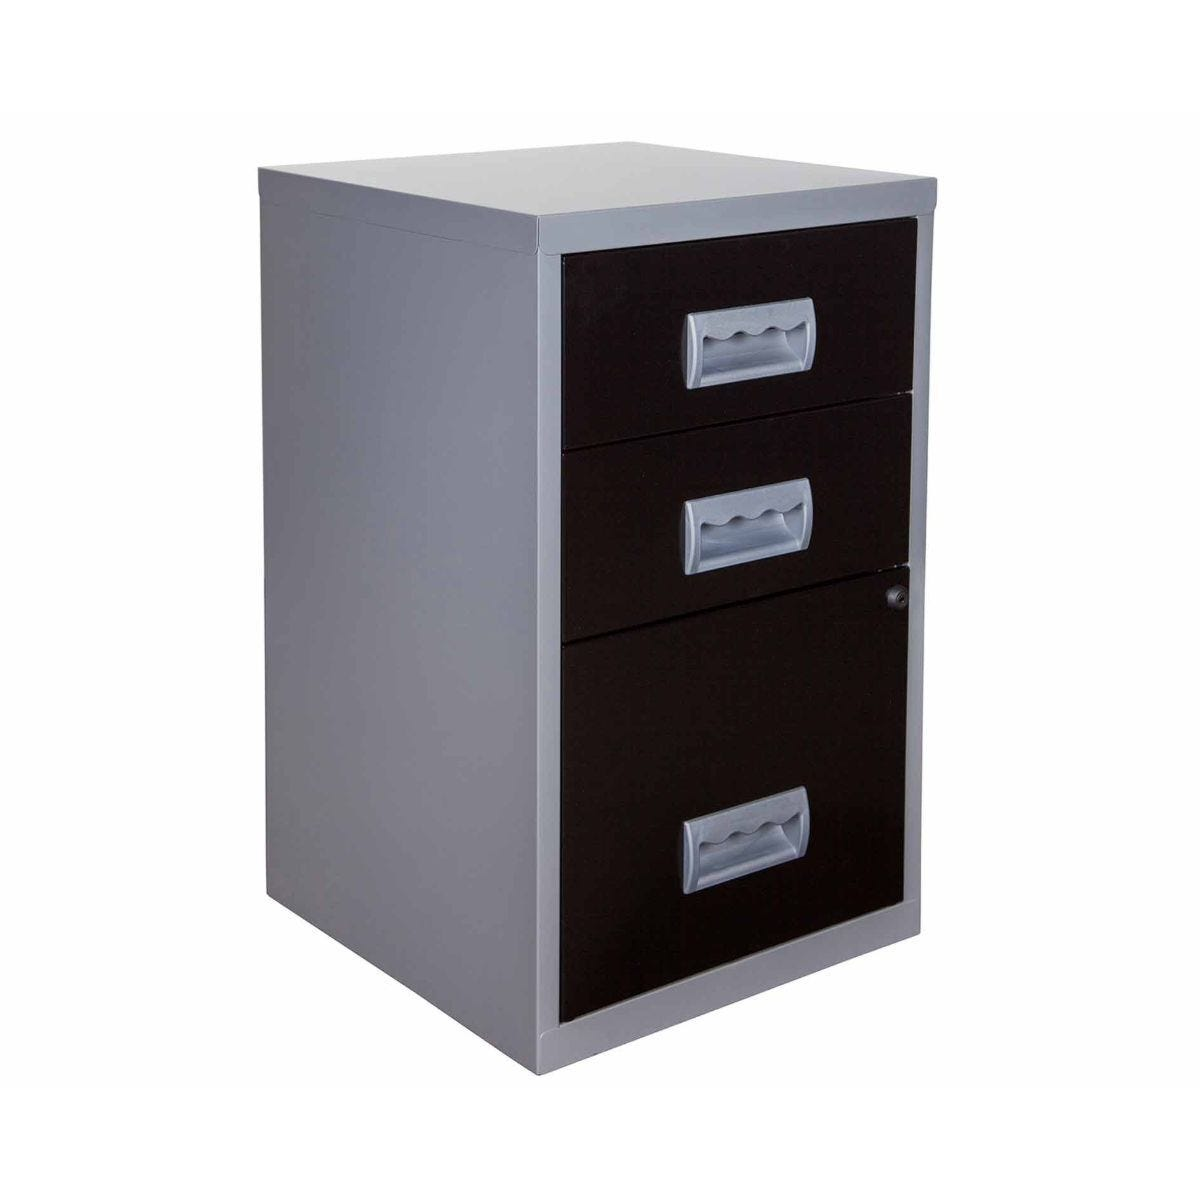 Pierre Henry 3 Drawer Combi Filing Cabinet A4 Black/Silver